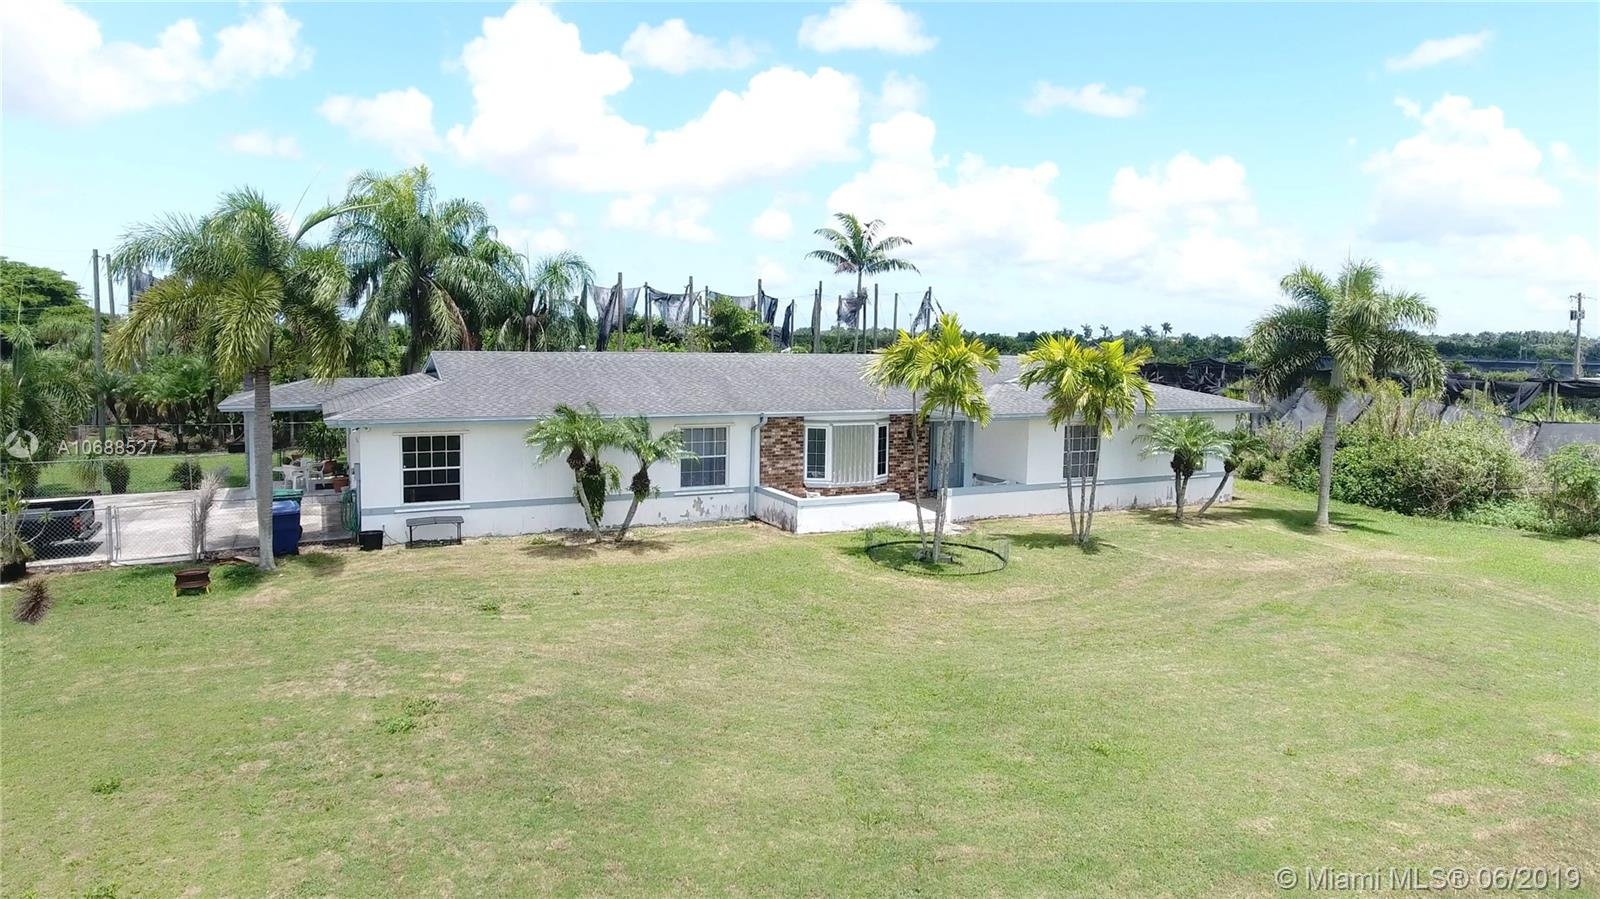 28405 SW 185th Ave, Homestead, FL 33030 - Homestead, FL real estate listing